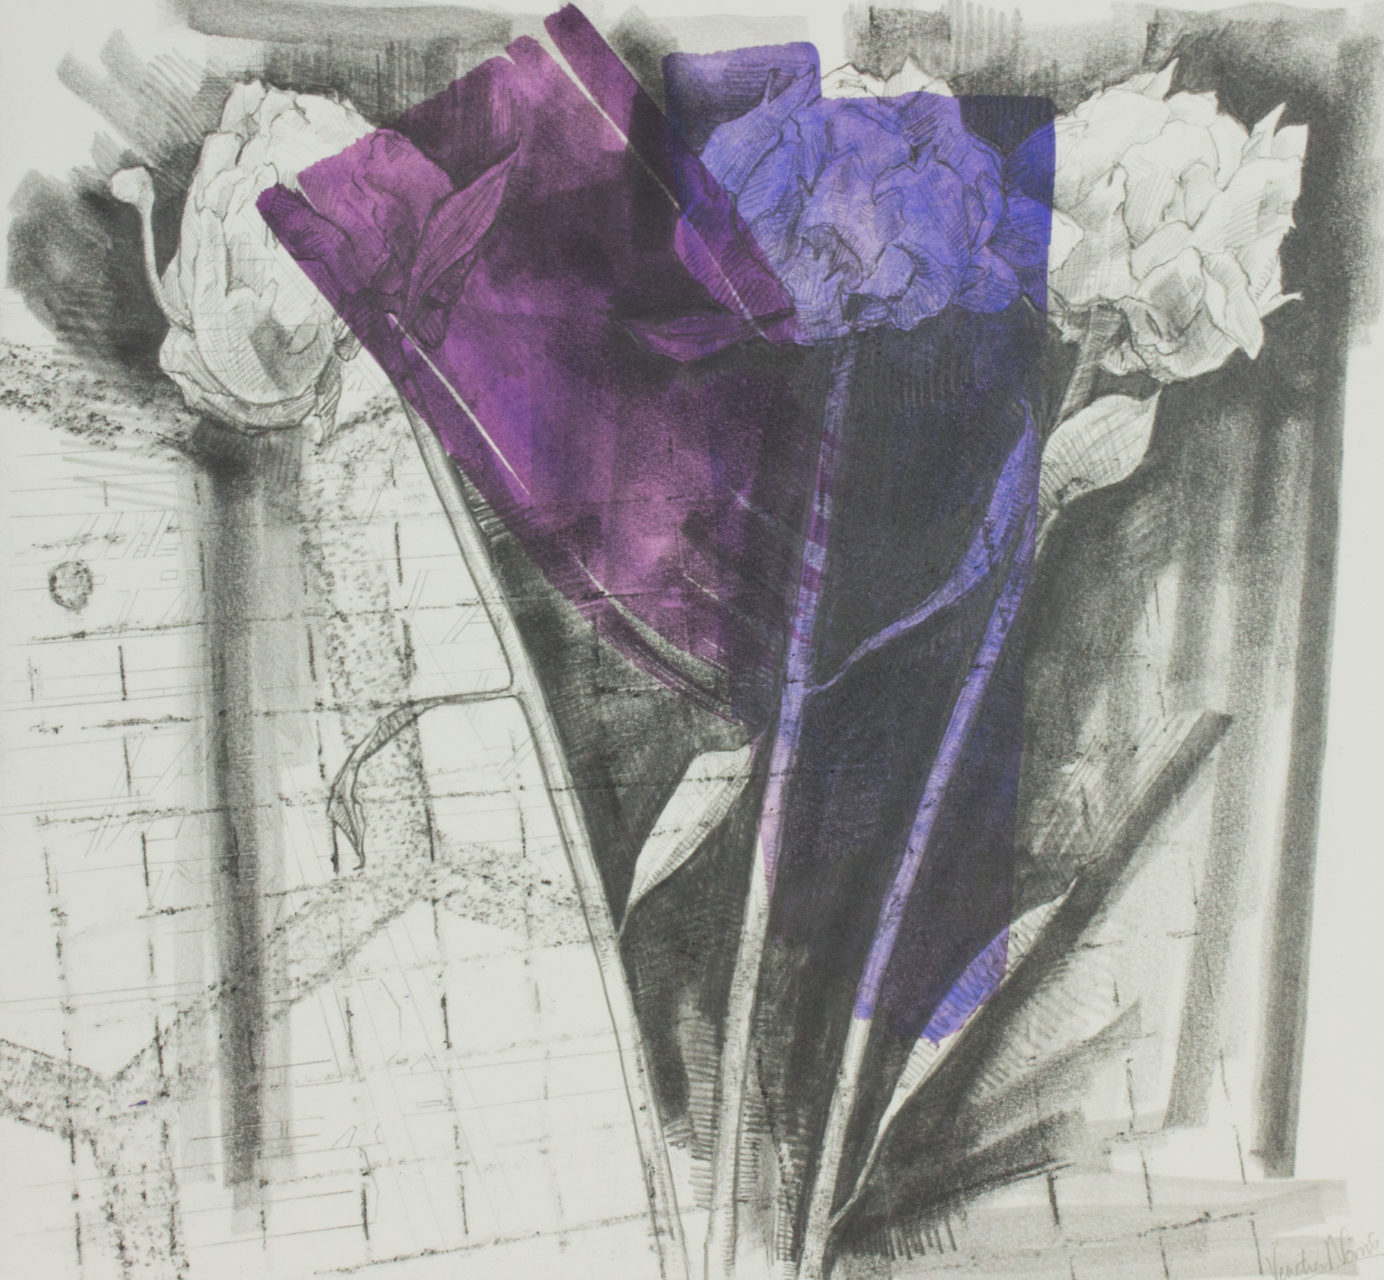 Colours and scents, graphite and paint on board, 35.4 x 38.2 cm, £725